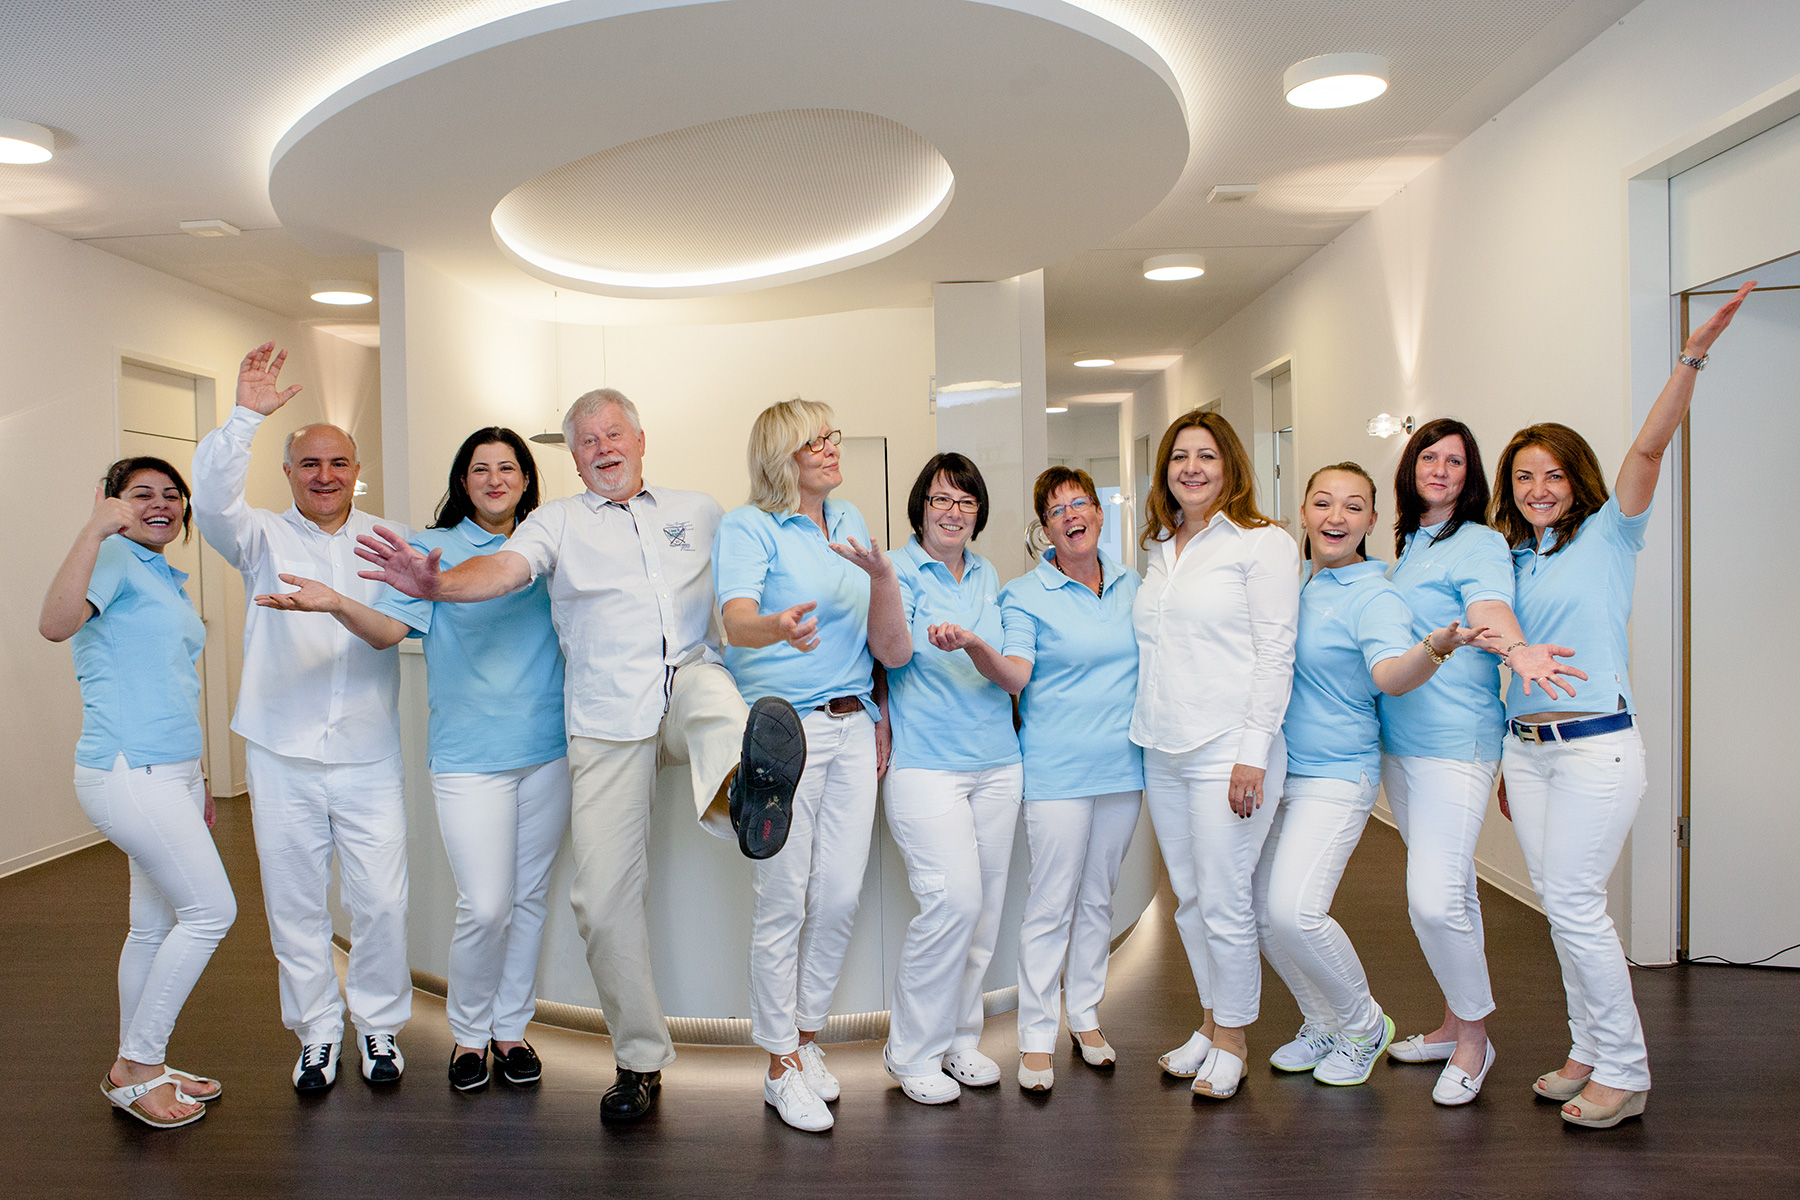 corporate branding image of a dentist office and the employees jumping and having fun